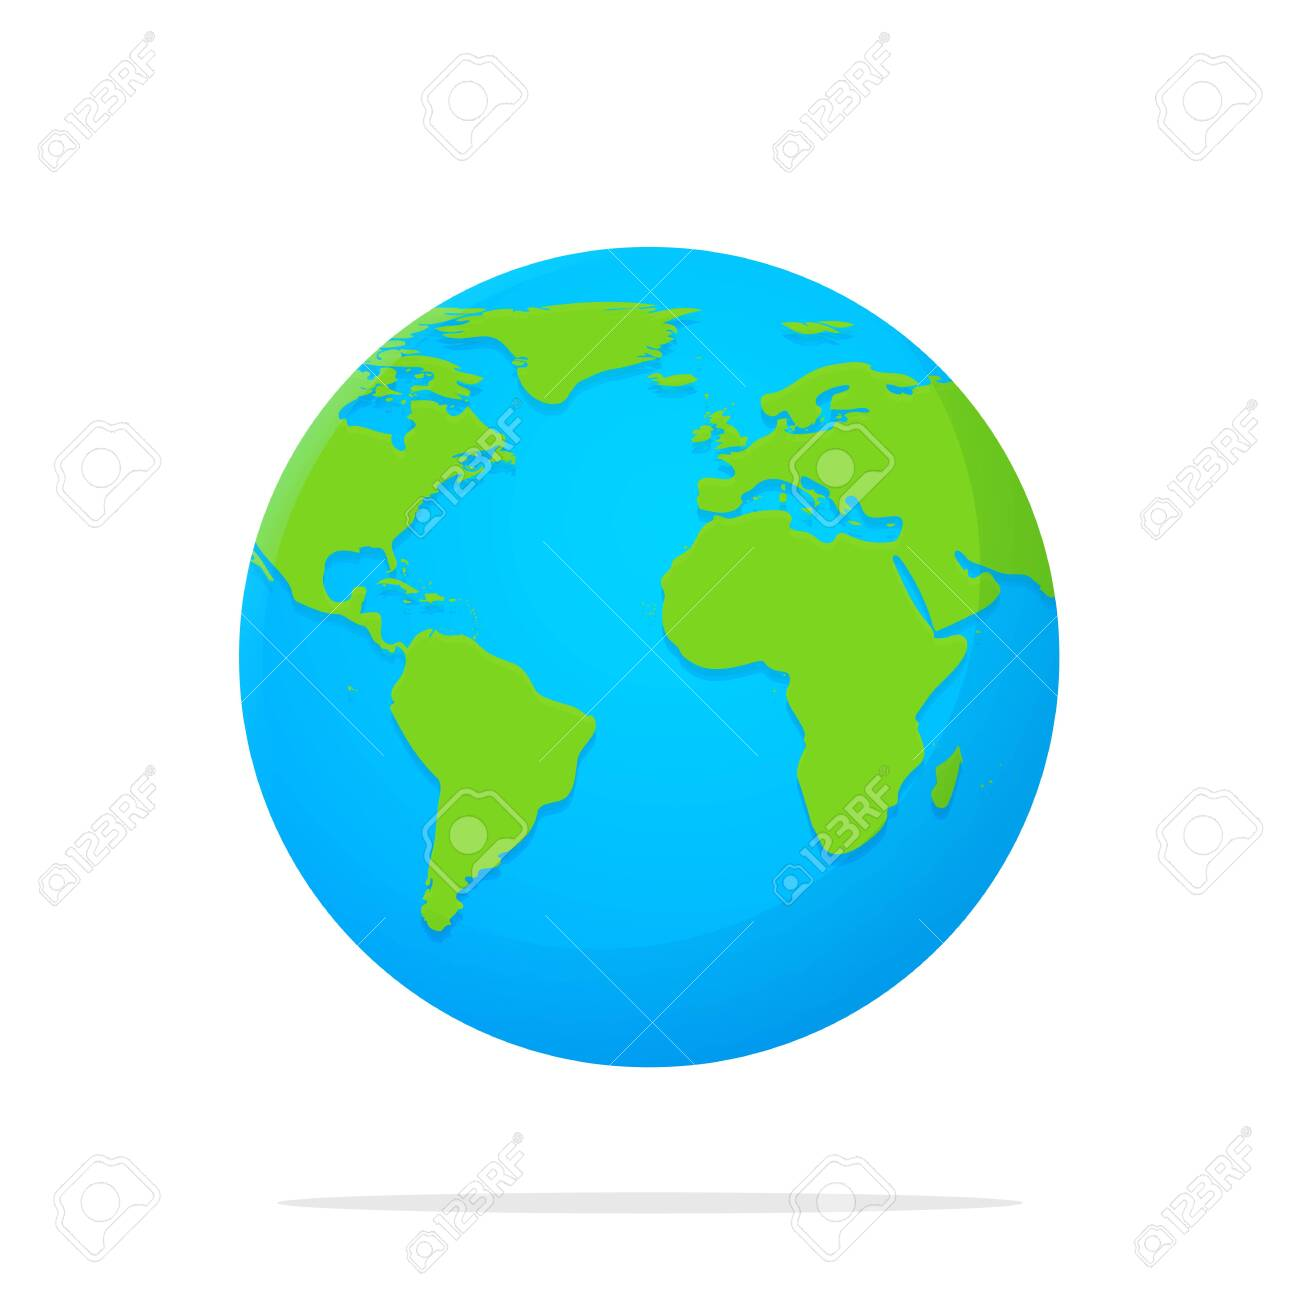 Earth Icon Vector Globe With A Flat Cartoon World Map Isolate